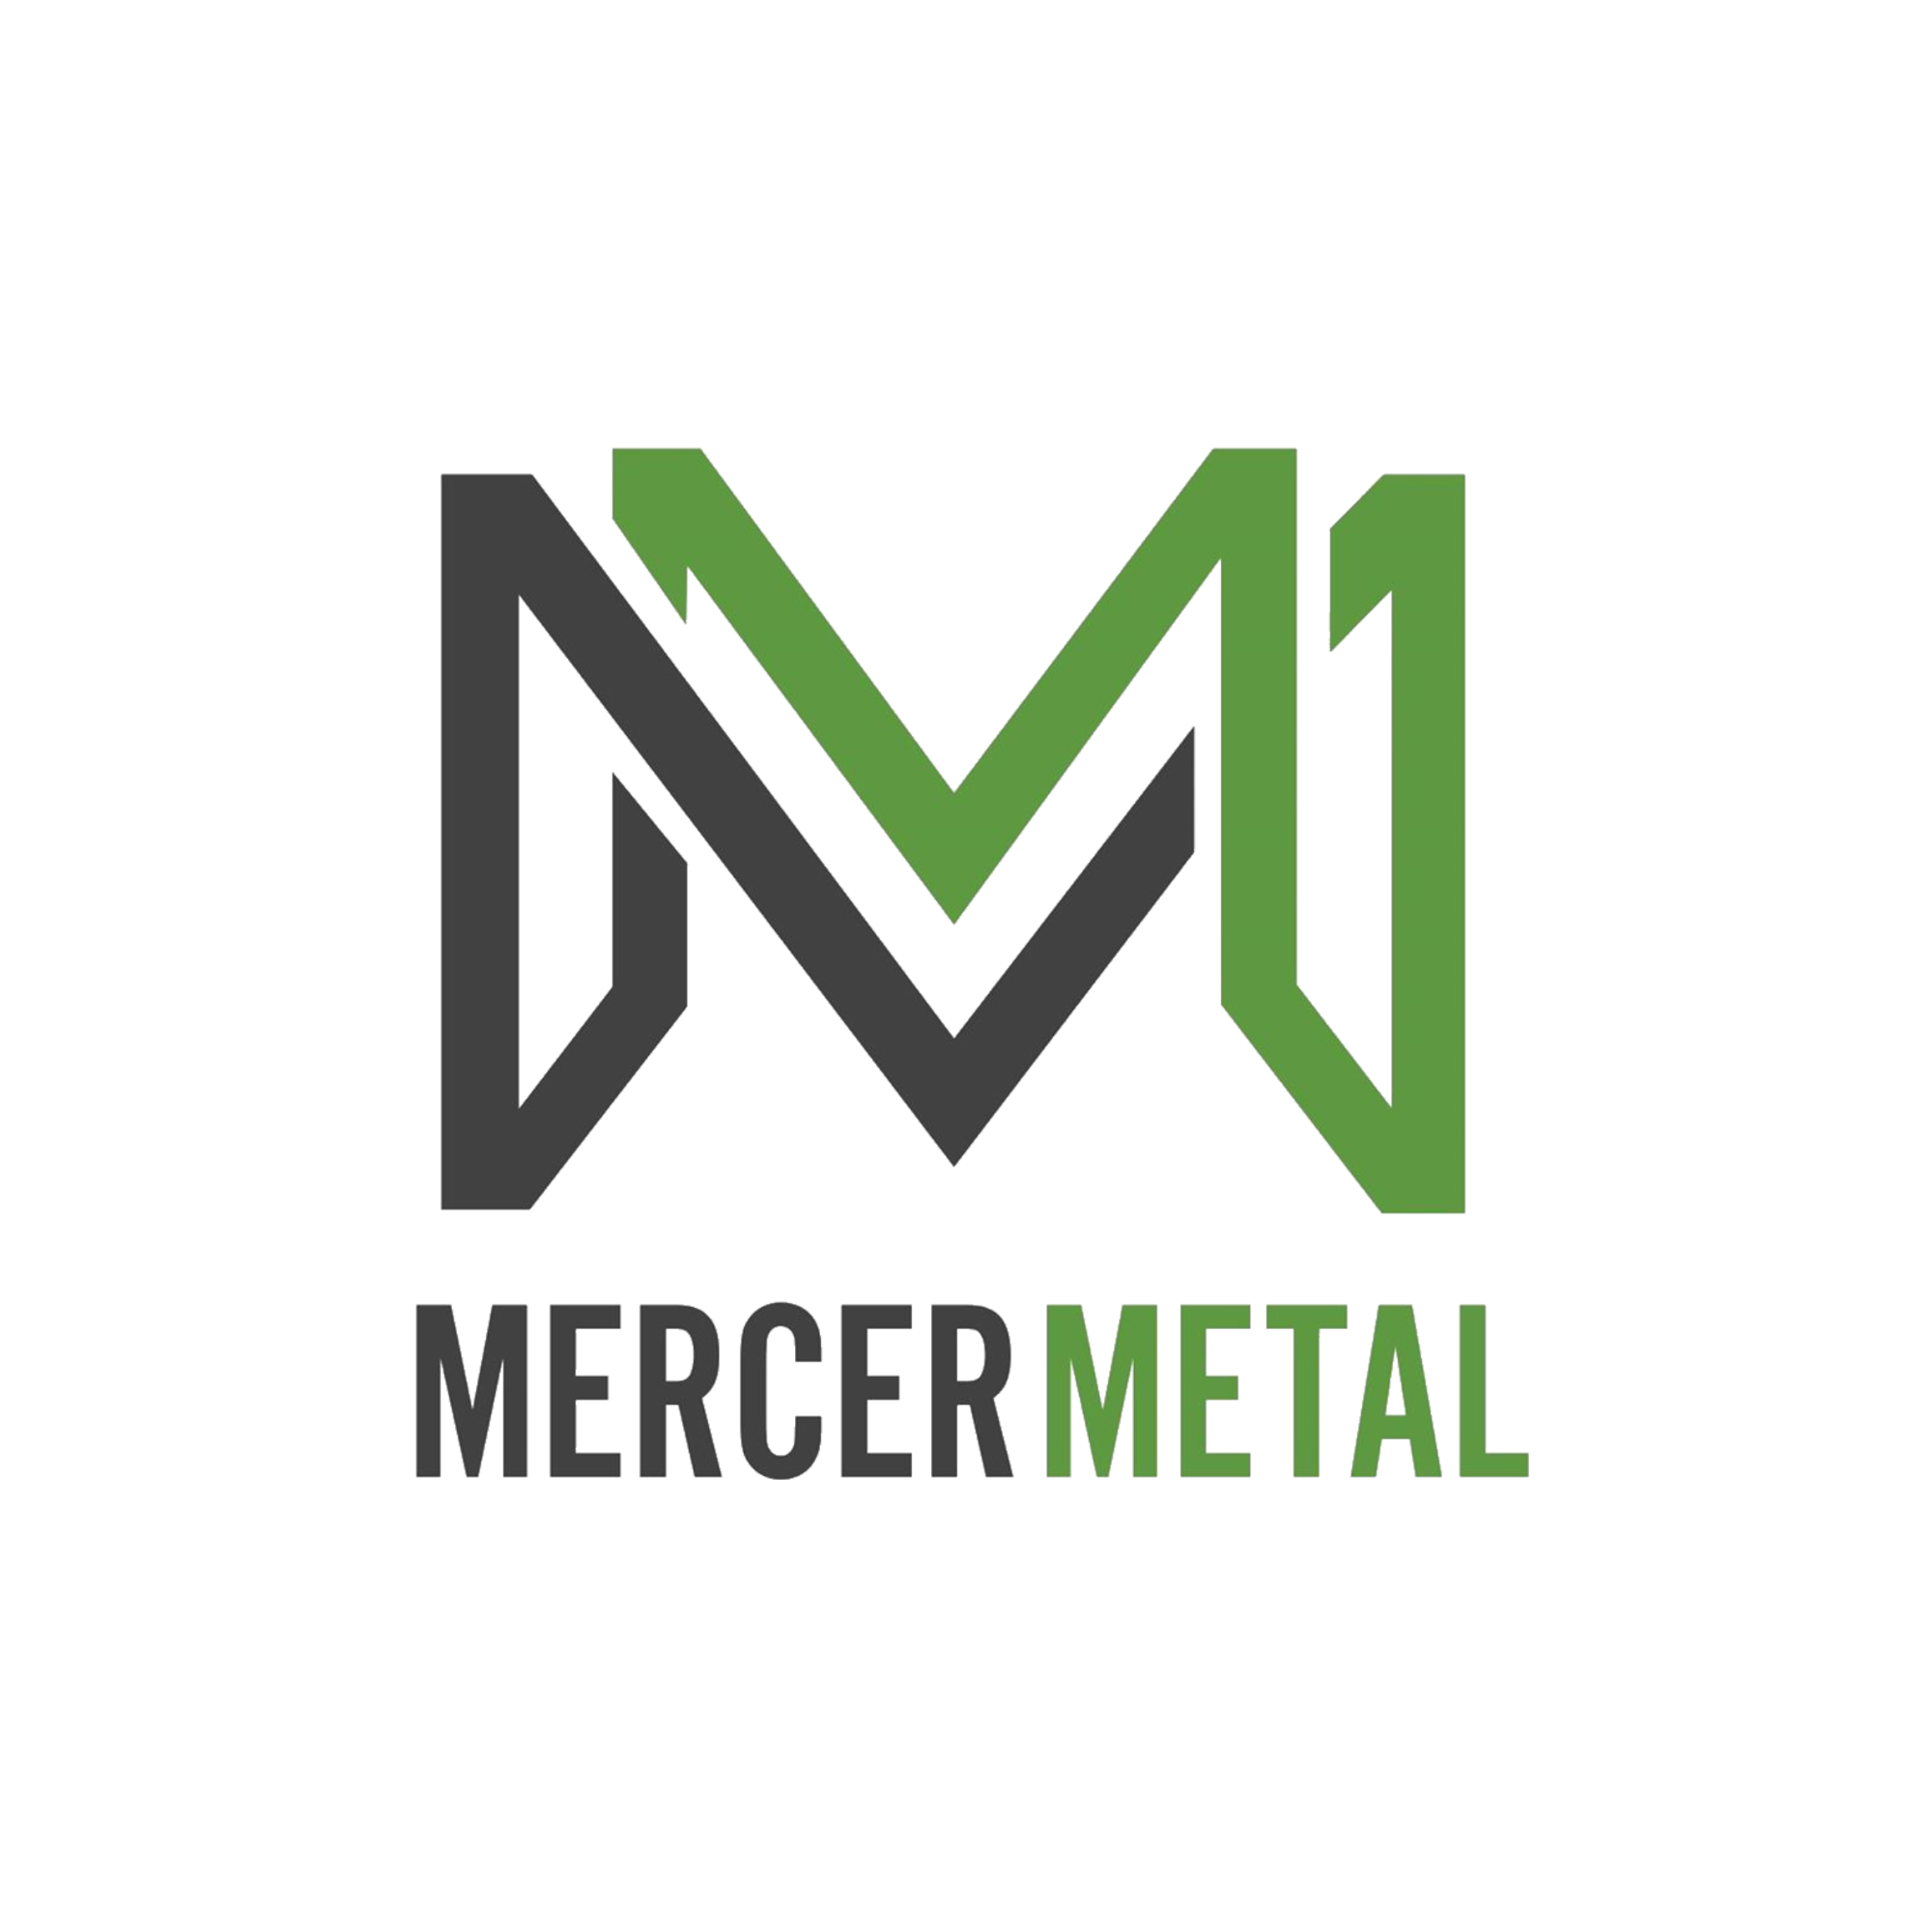 Mercer Metal